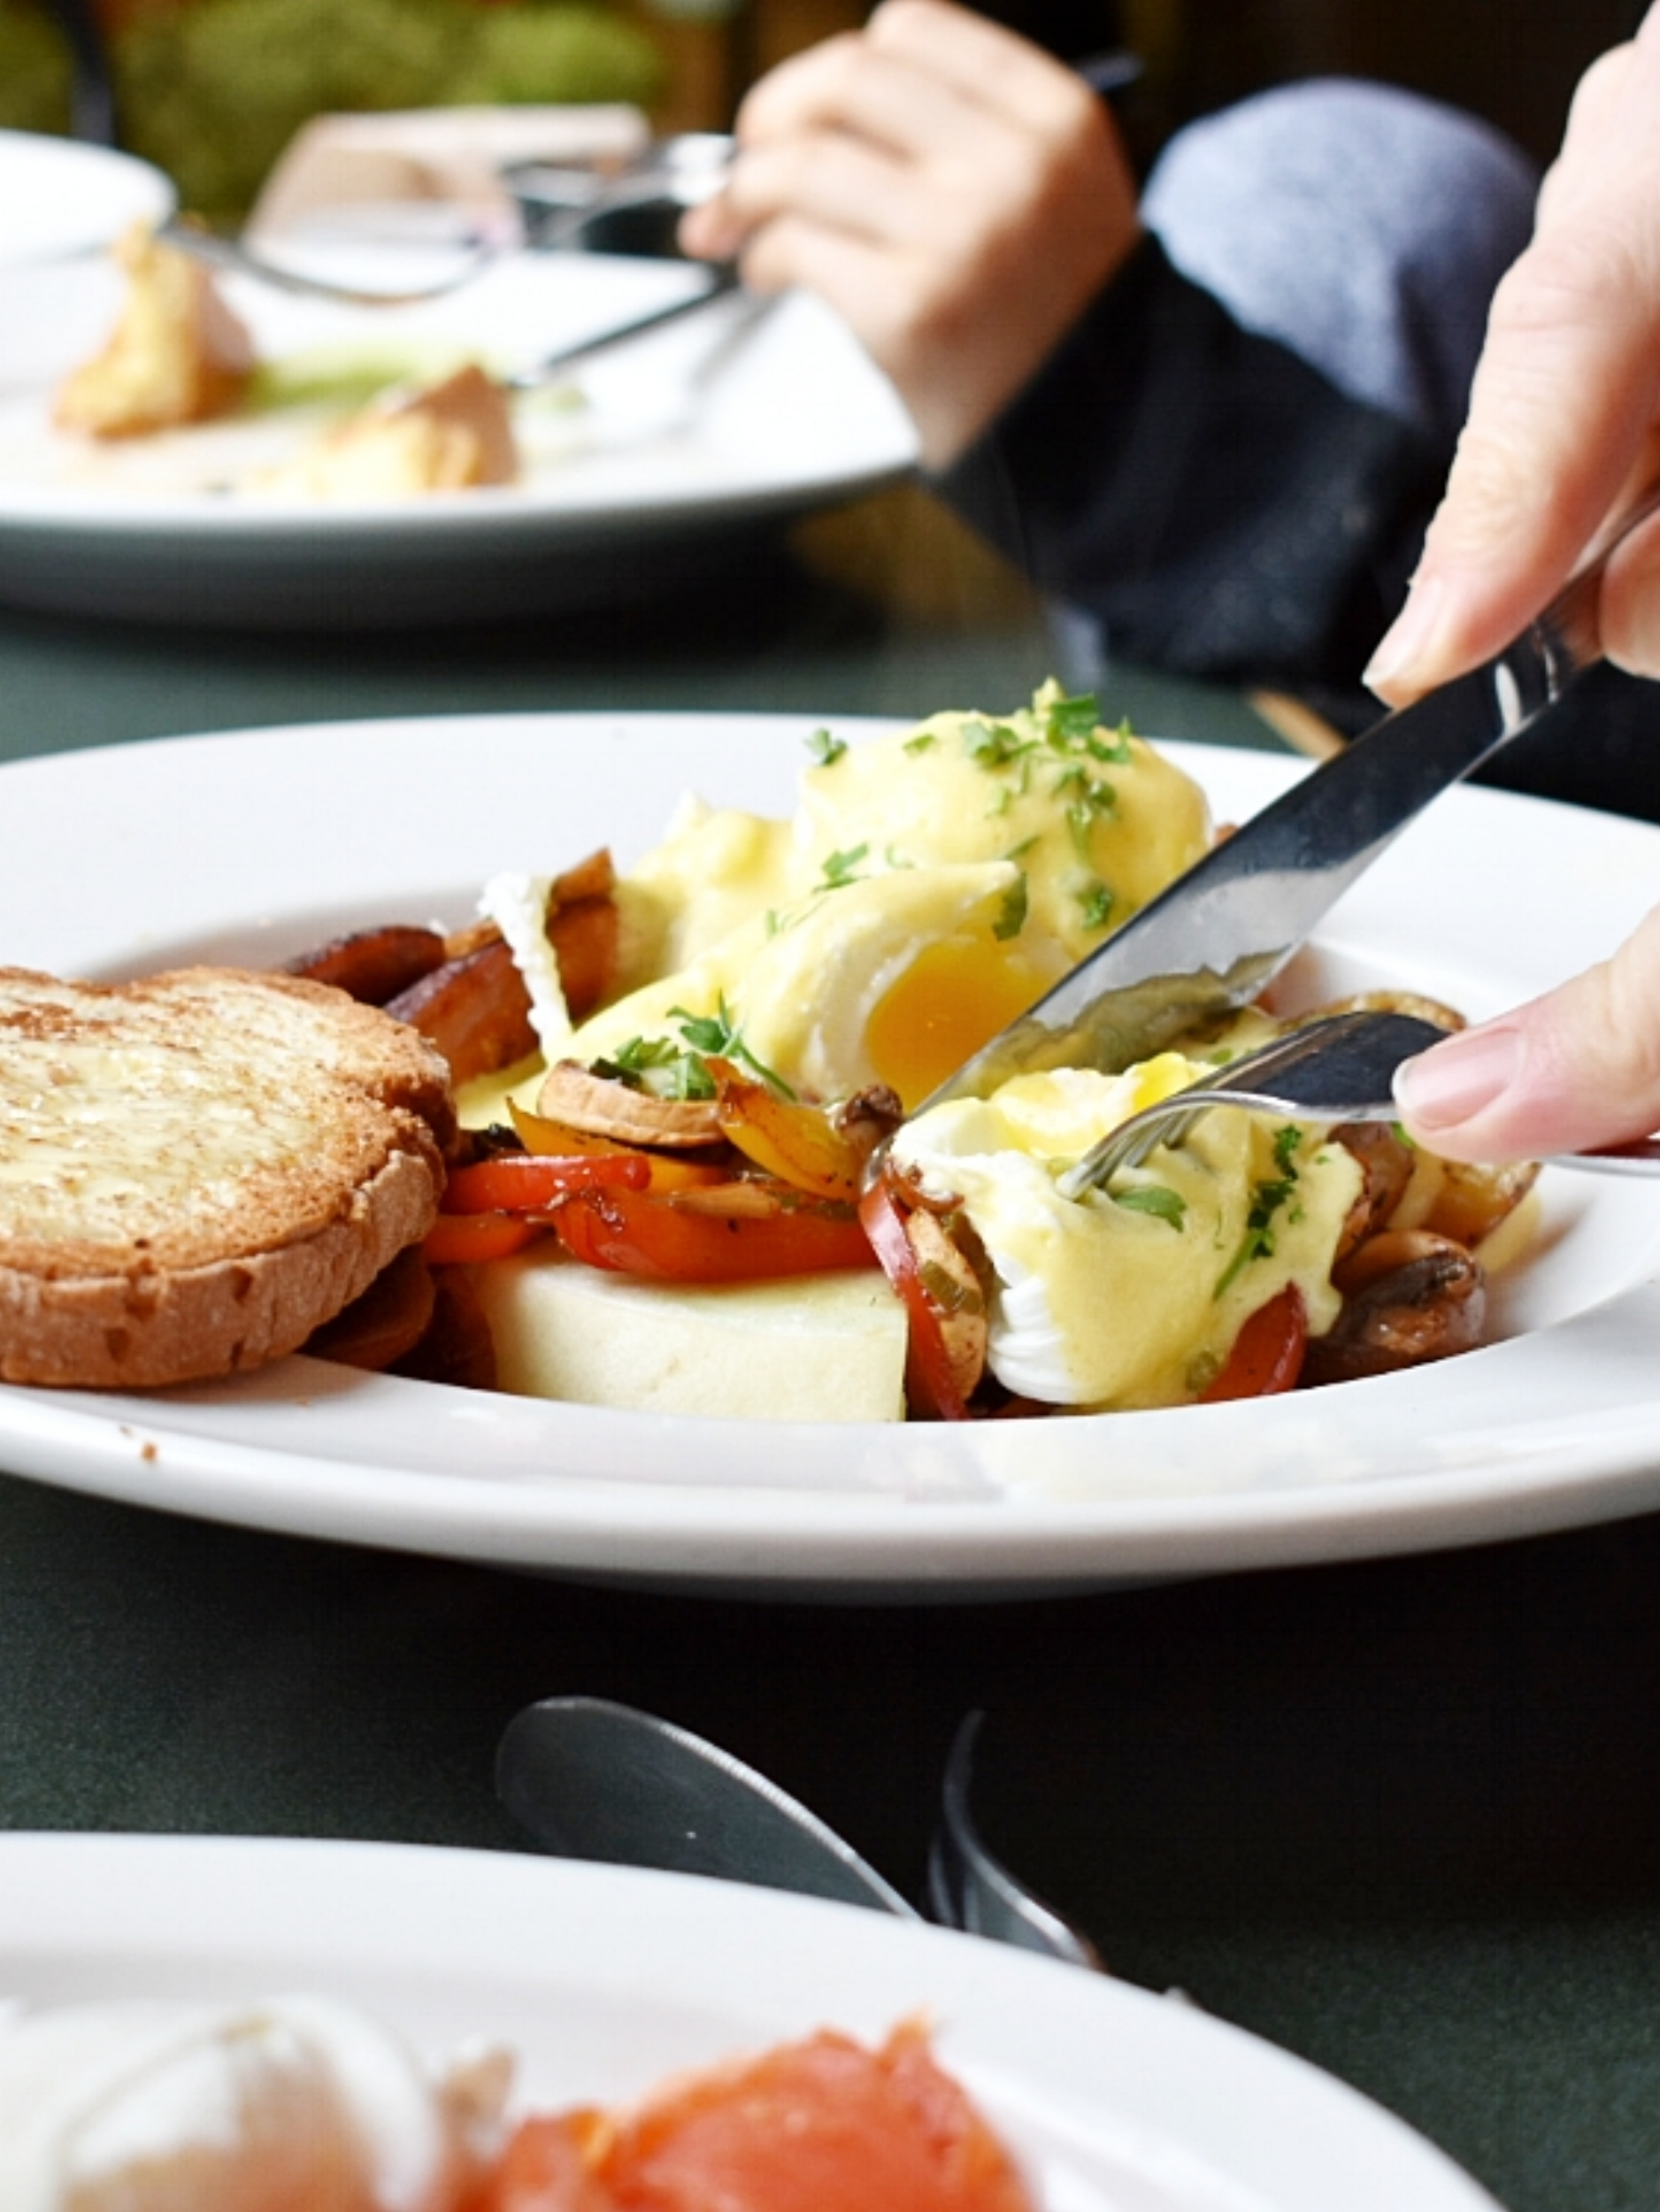 A hearty breakfast at Alpine Cafe is the perfect start to any day.